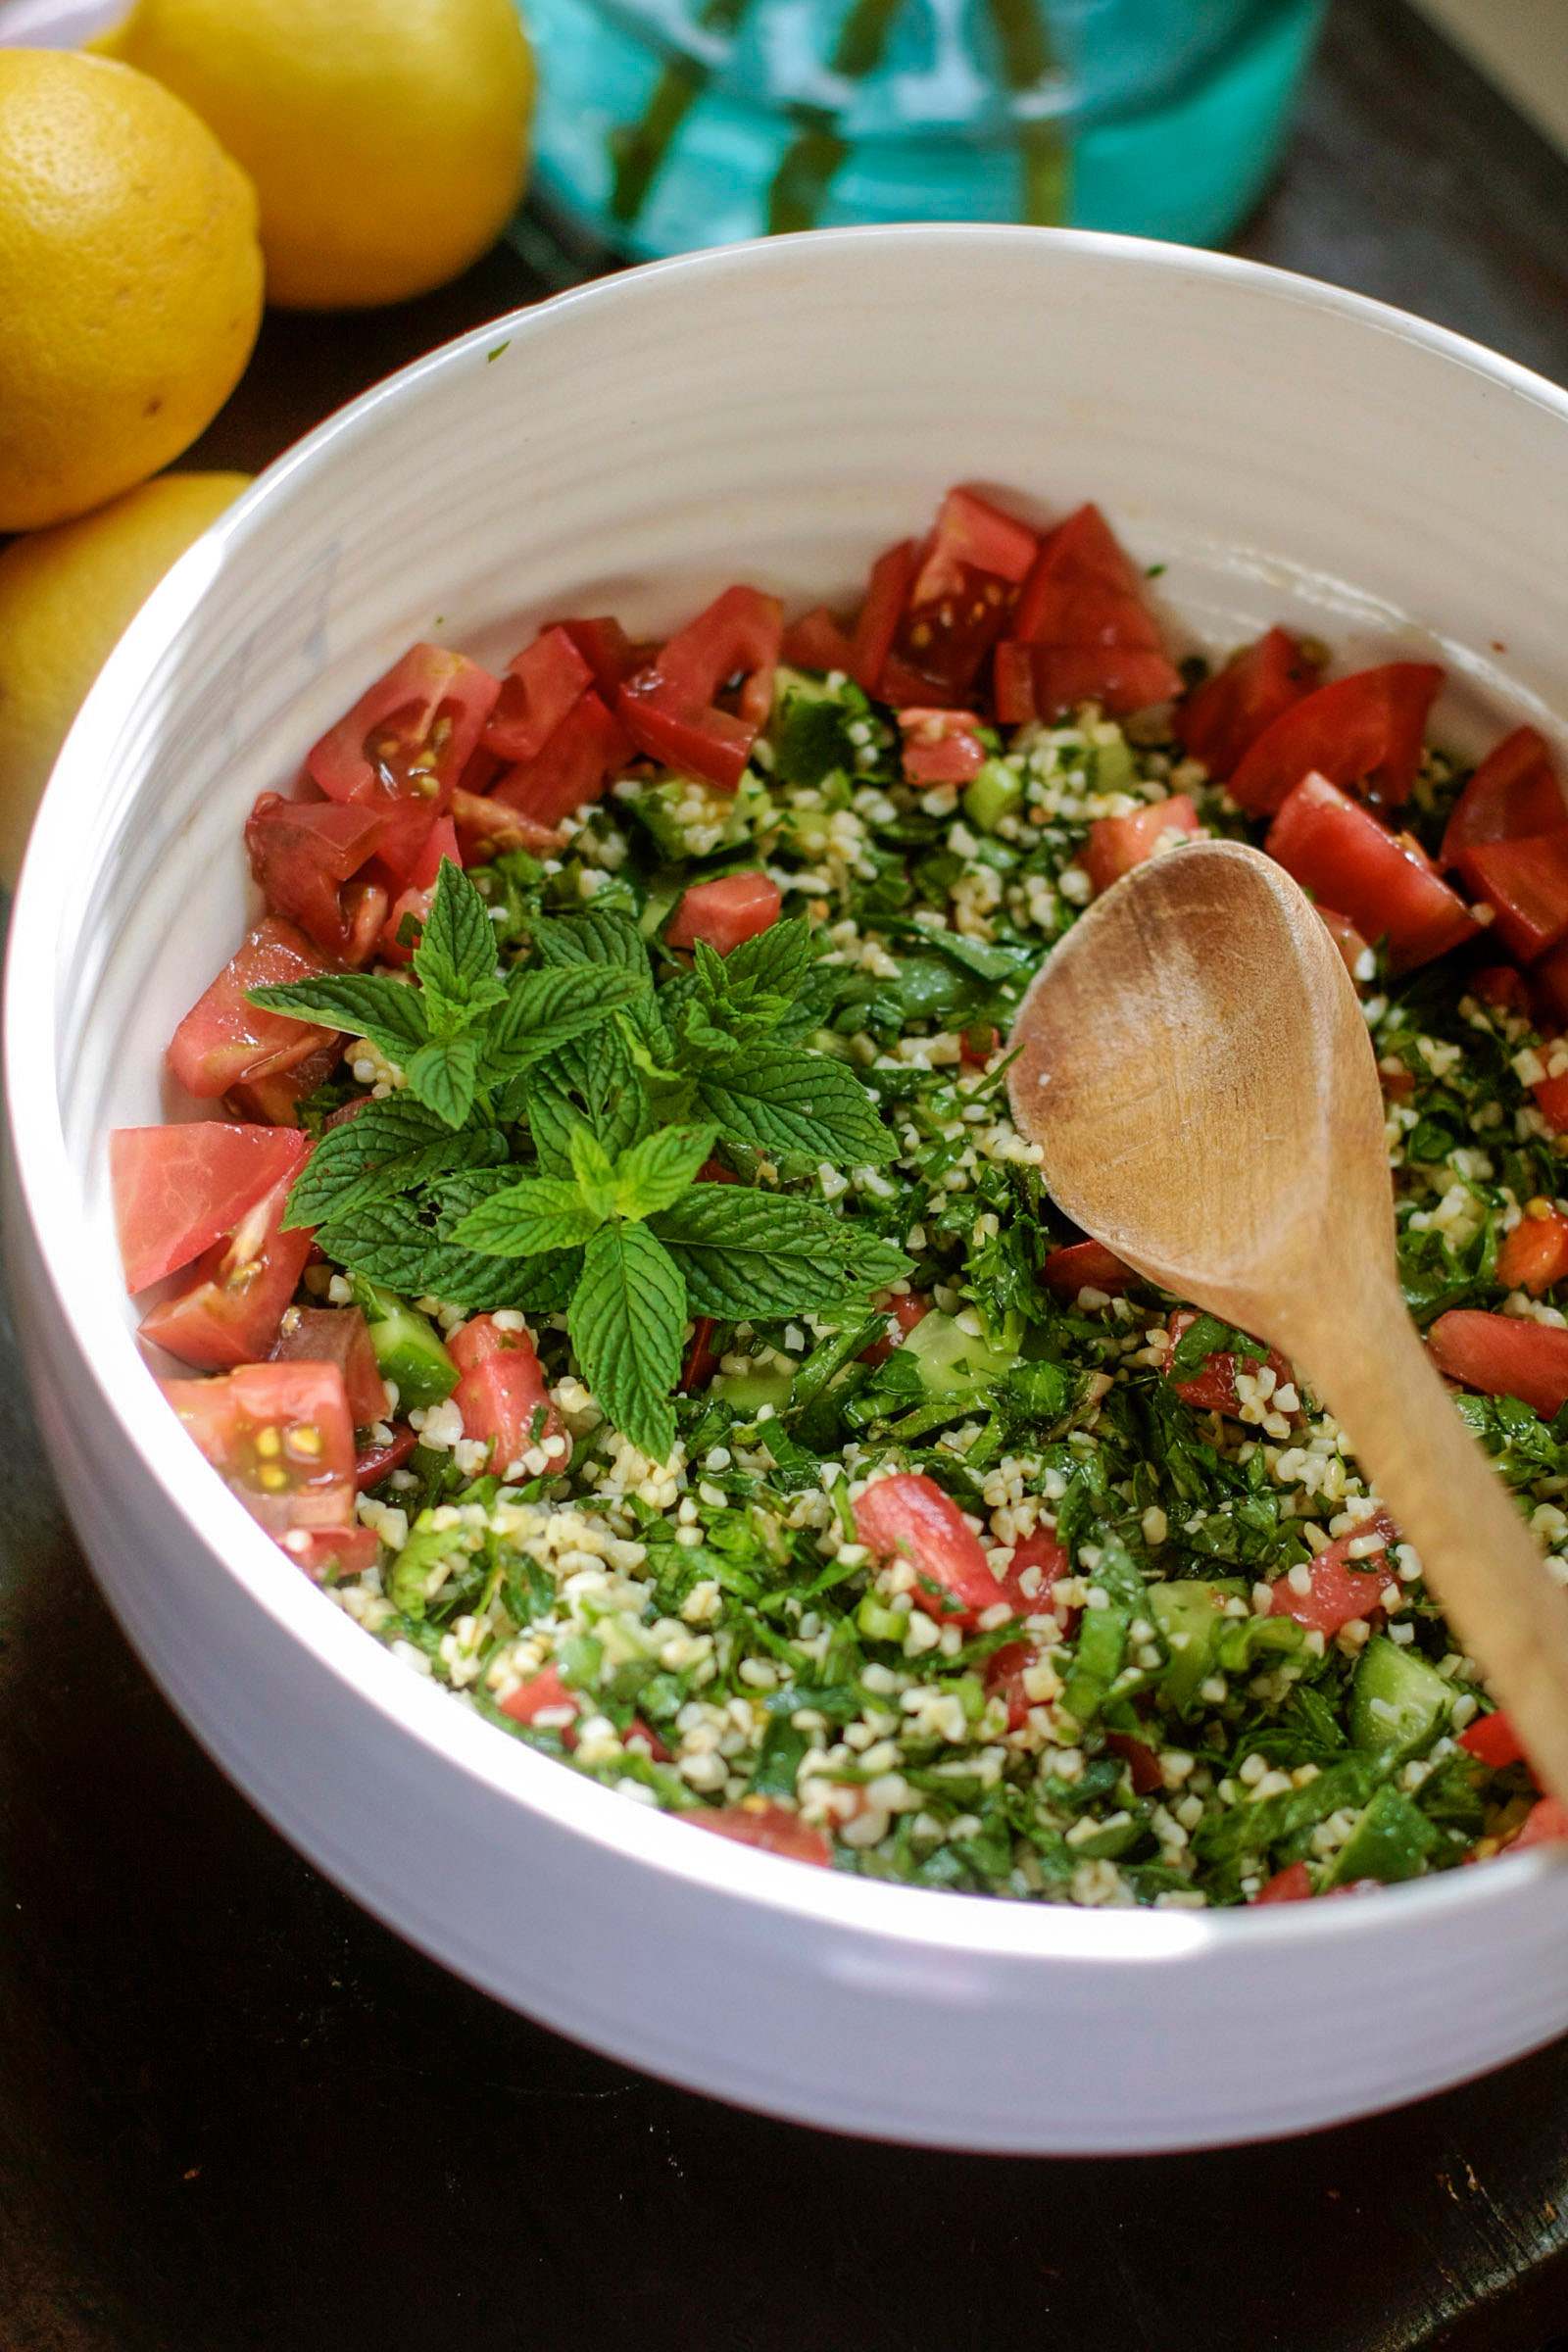 How to Make Tabbouleh Salad with Bulgur, Quinoa, or Cracked Wheat | Kitchn